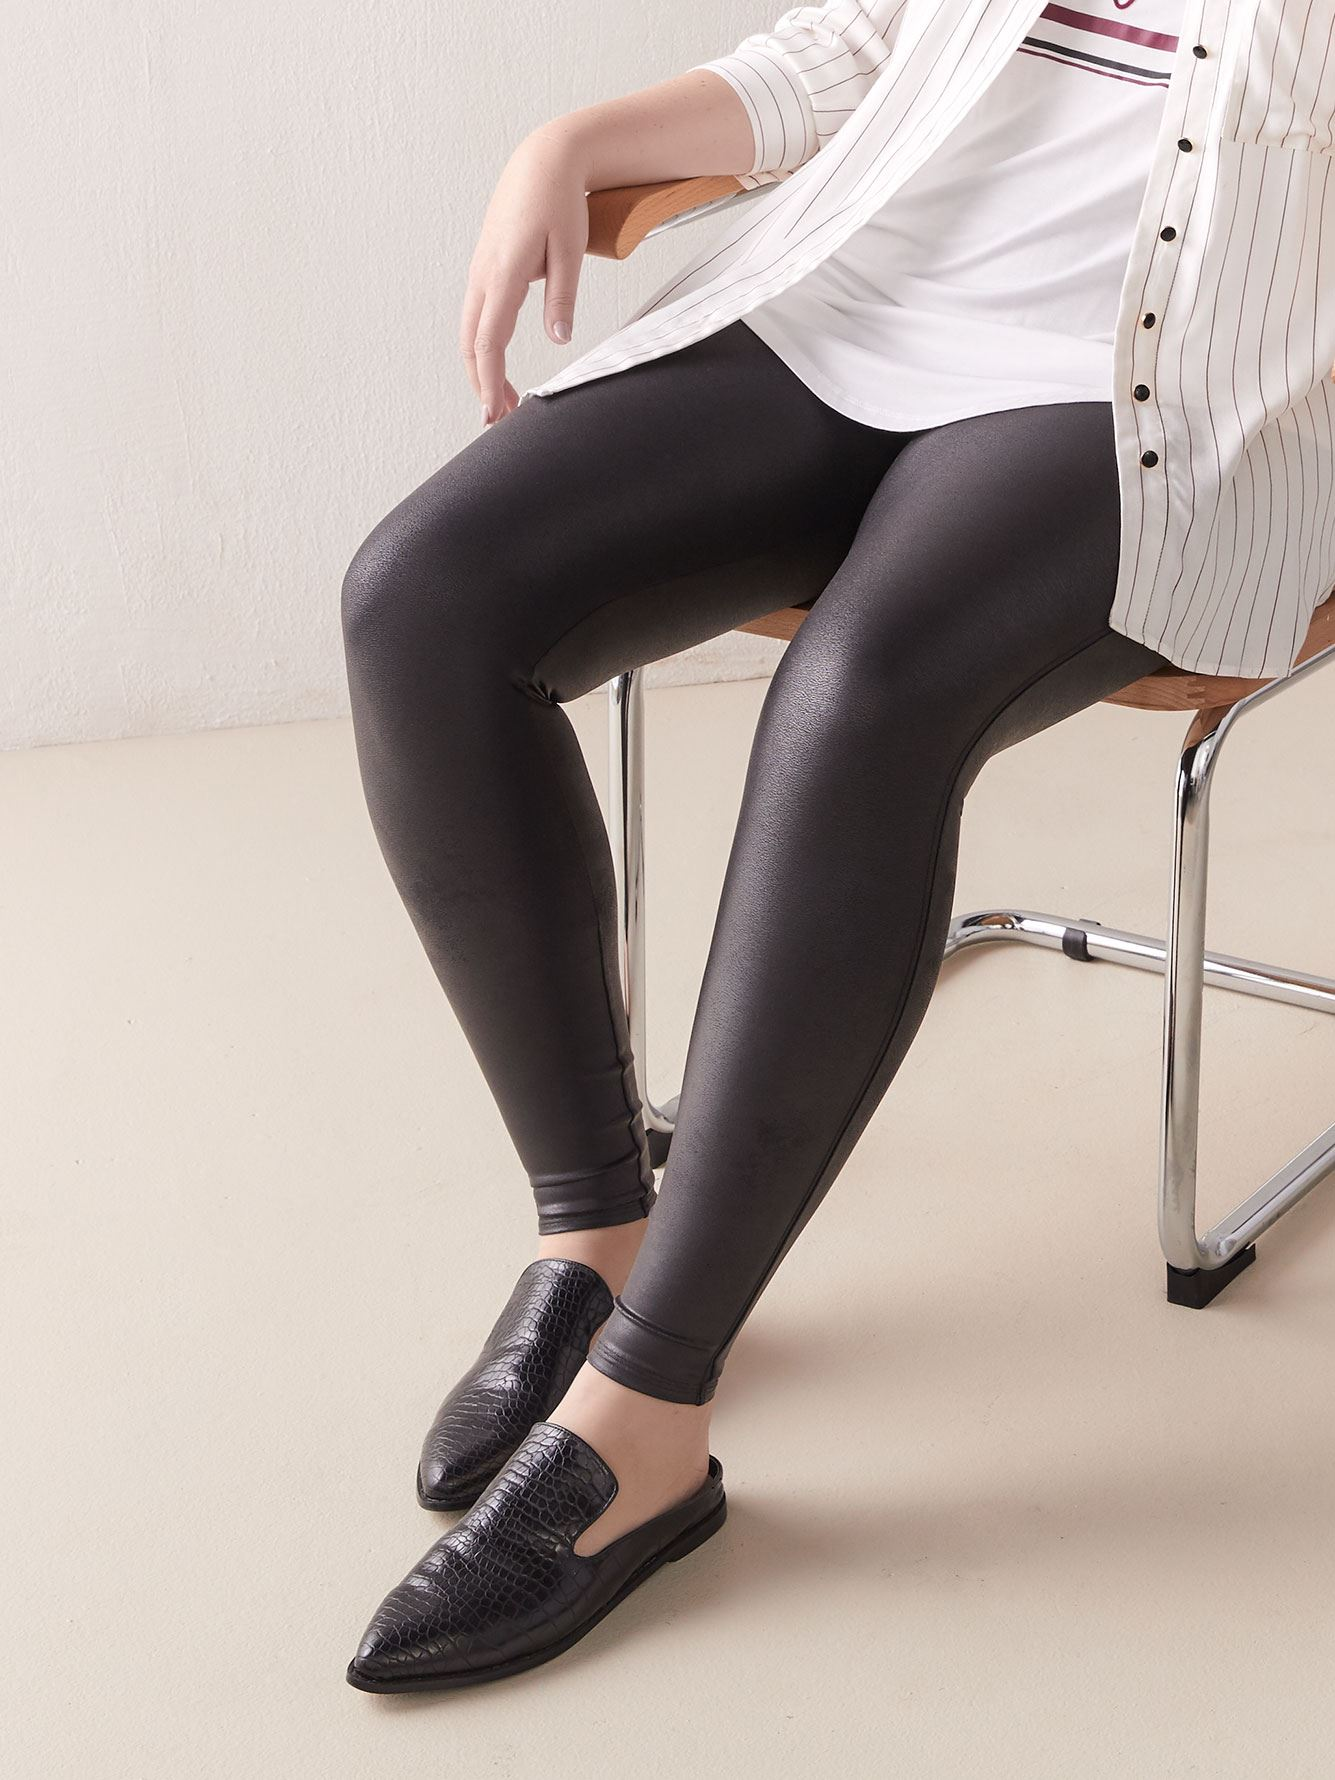 PETITE Faux Leather Leggings - Spanx